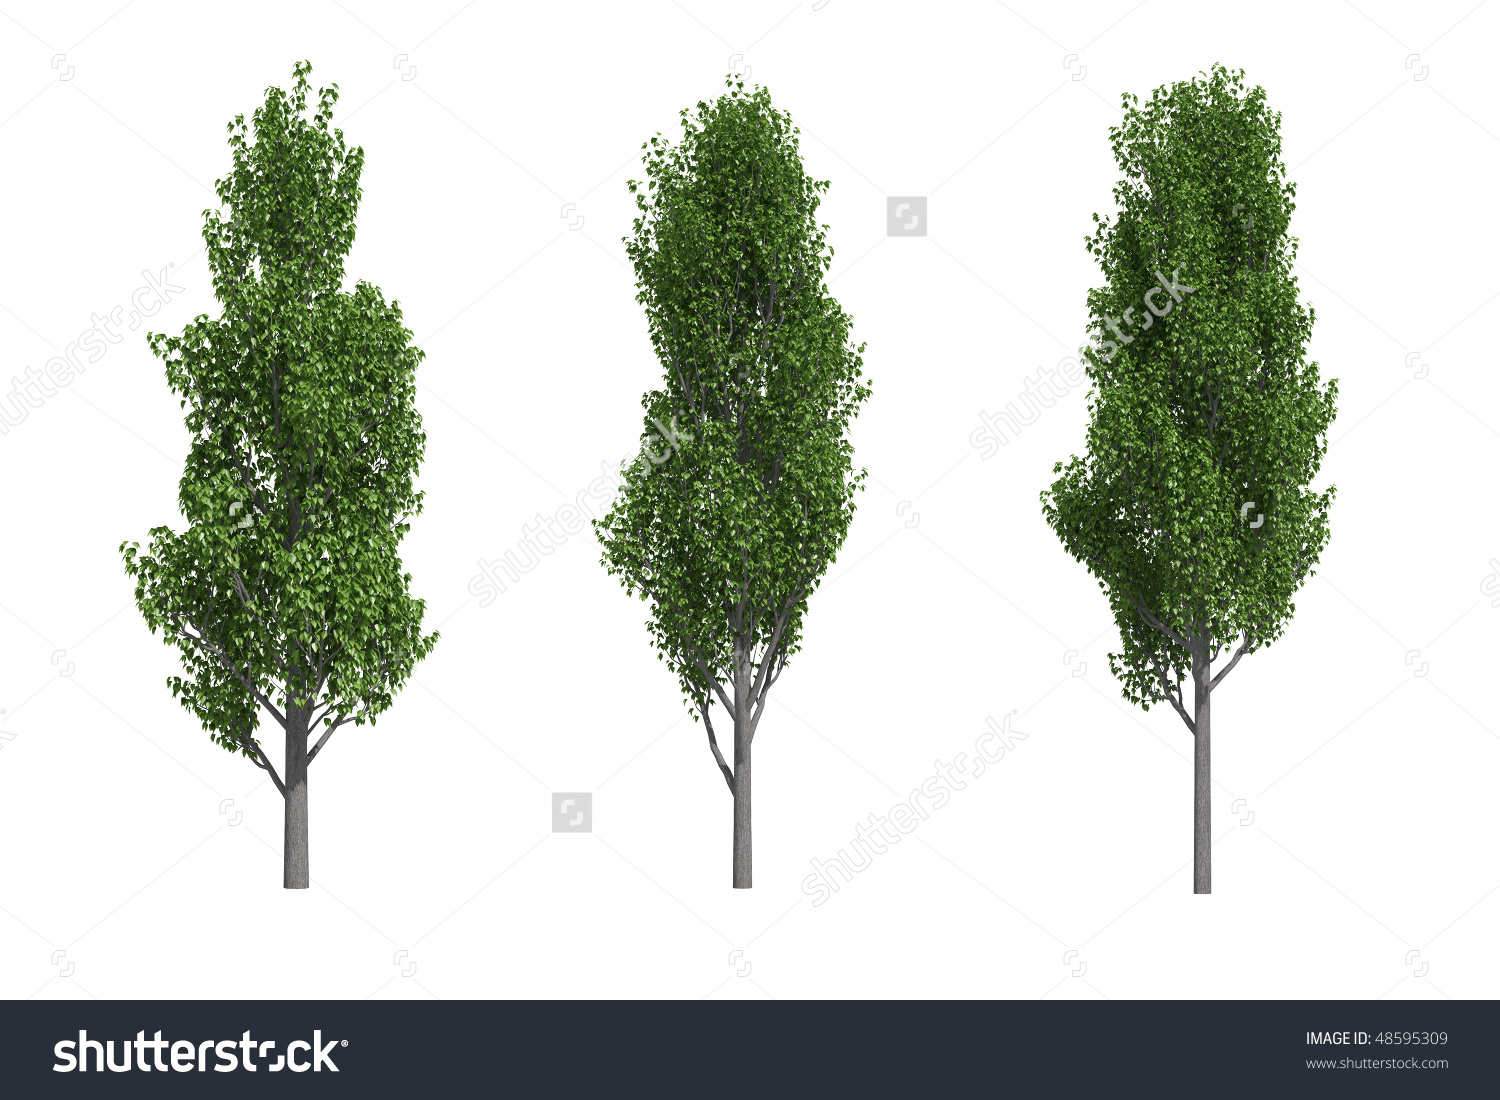 Poplar Trees Isolated On White Background Stock Illustration.